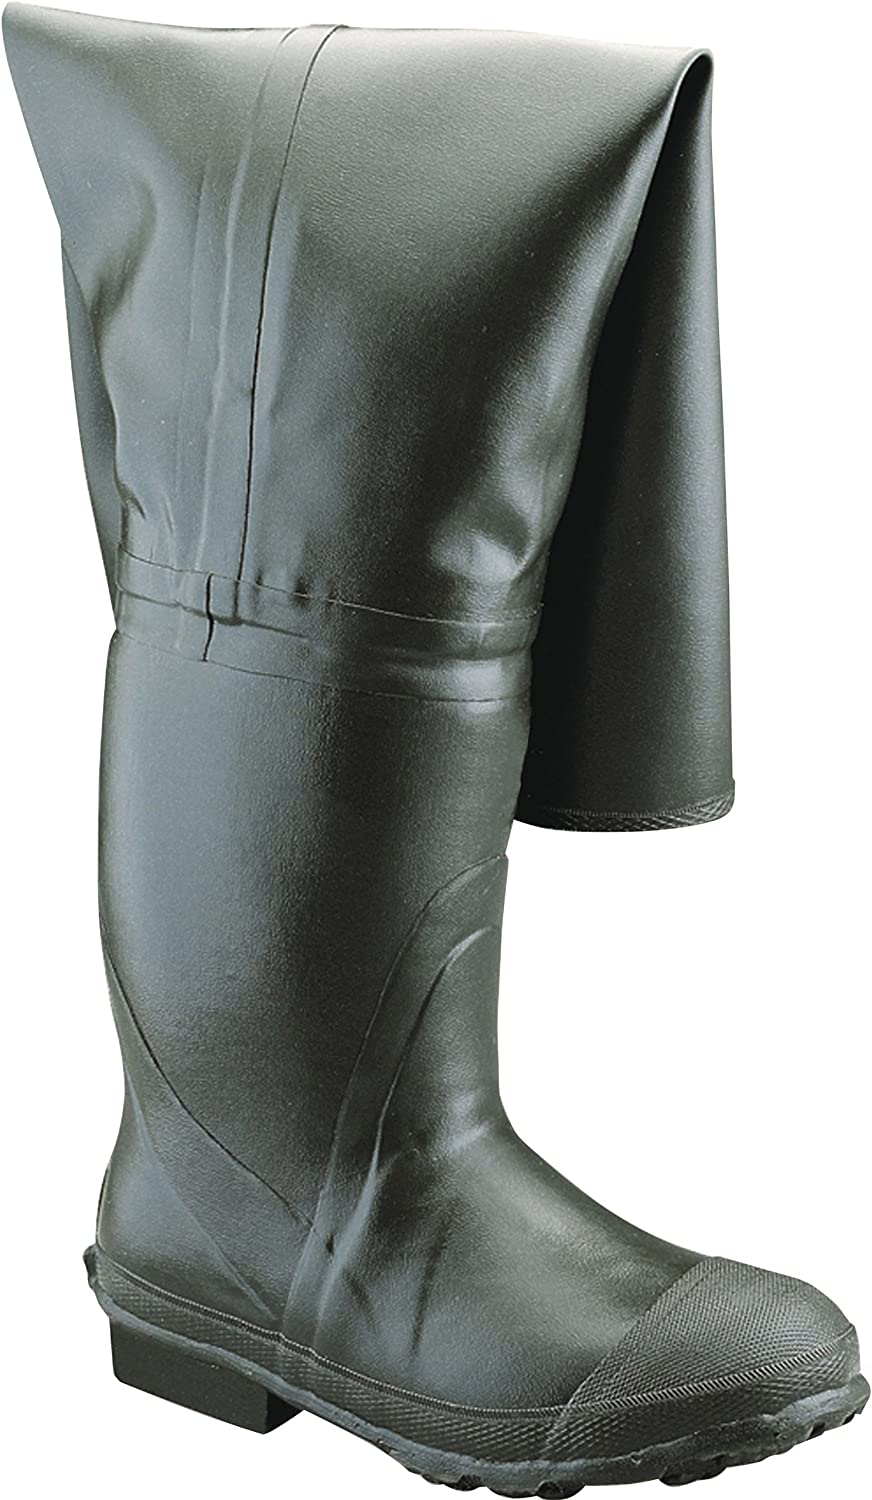 "Ranger Bullhead 32"" Heavy-Duty Men's Full Rubber Insulated Hip Boots, Forest Green (A2300)"